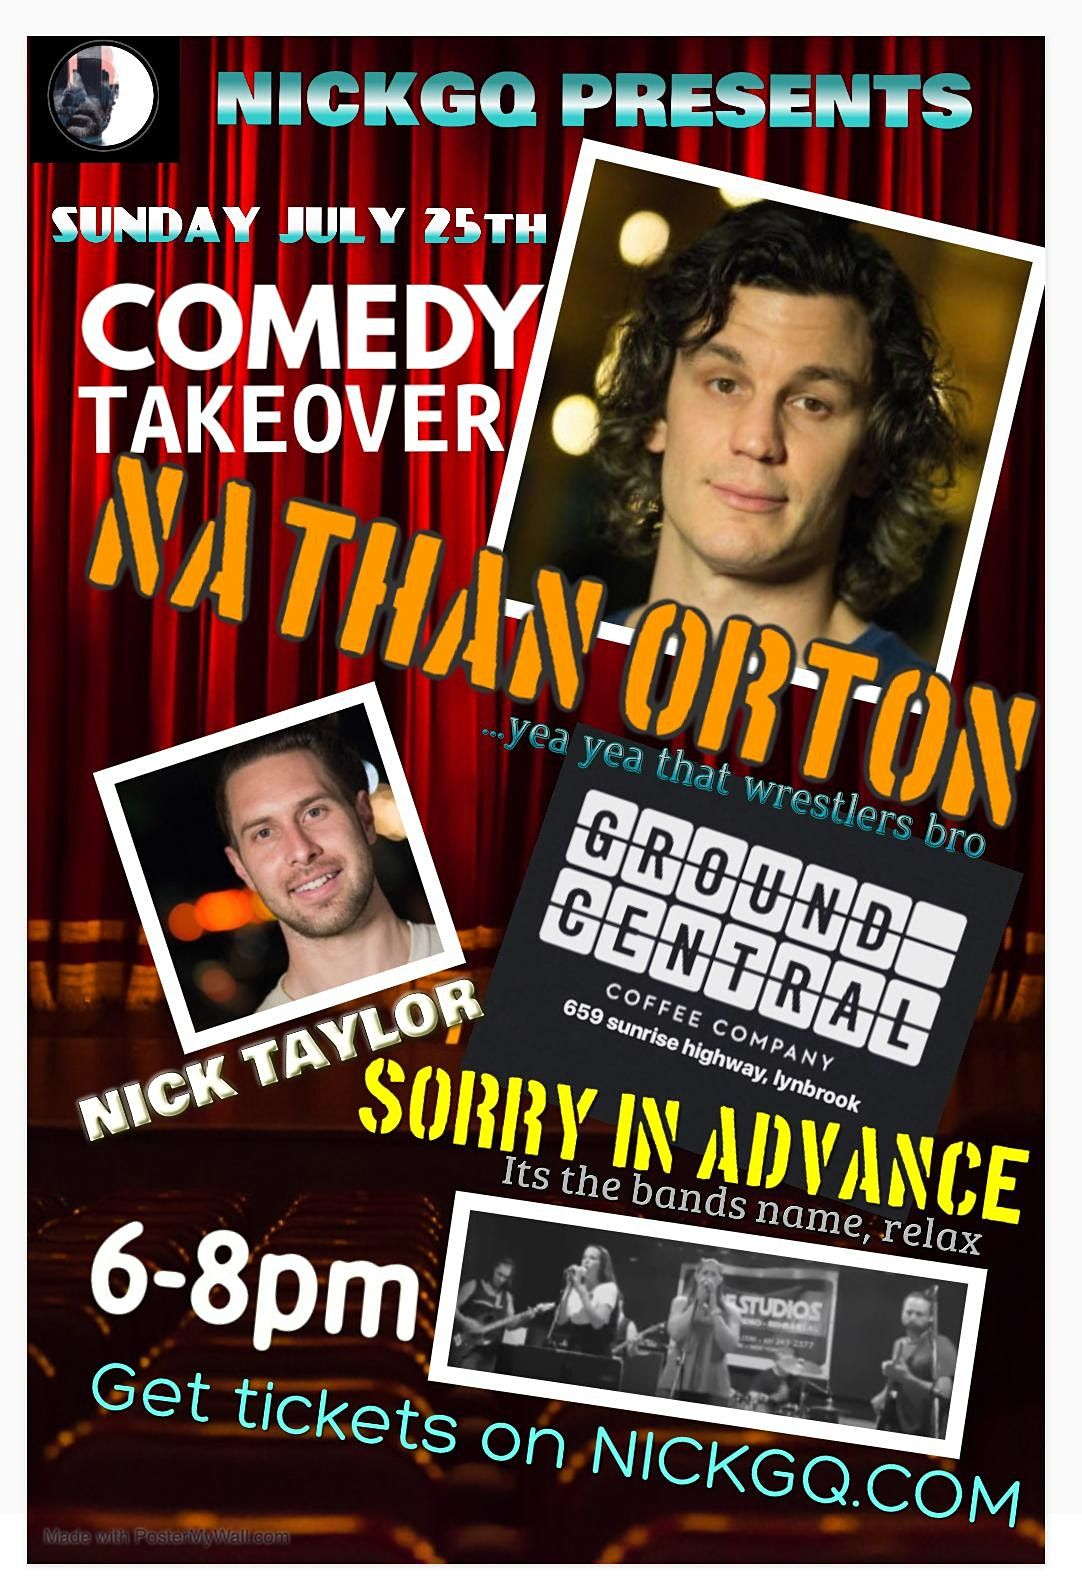 COMEDY TAKEOVER featuring NATHAN ORTON at Lynbrook Ground Central | Event in Lynbrook | AllEvents.in